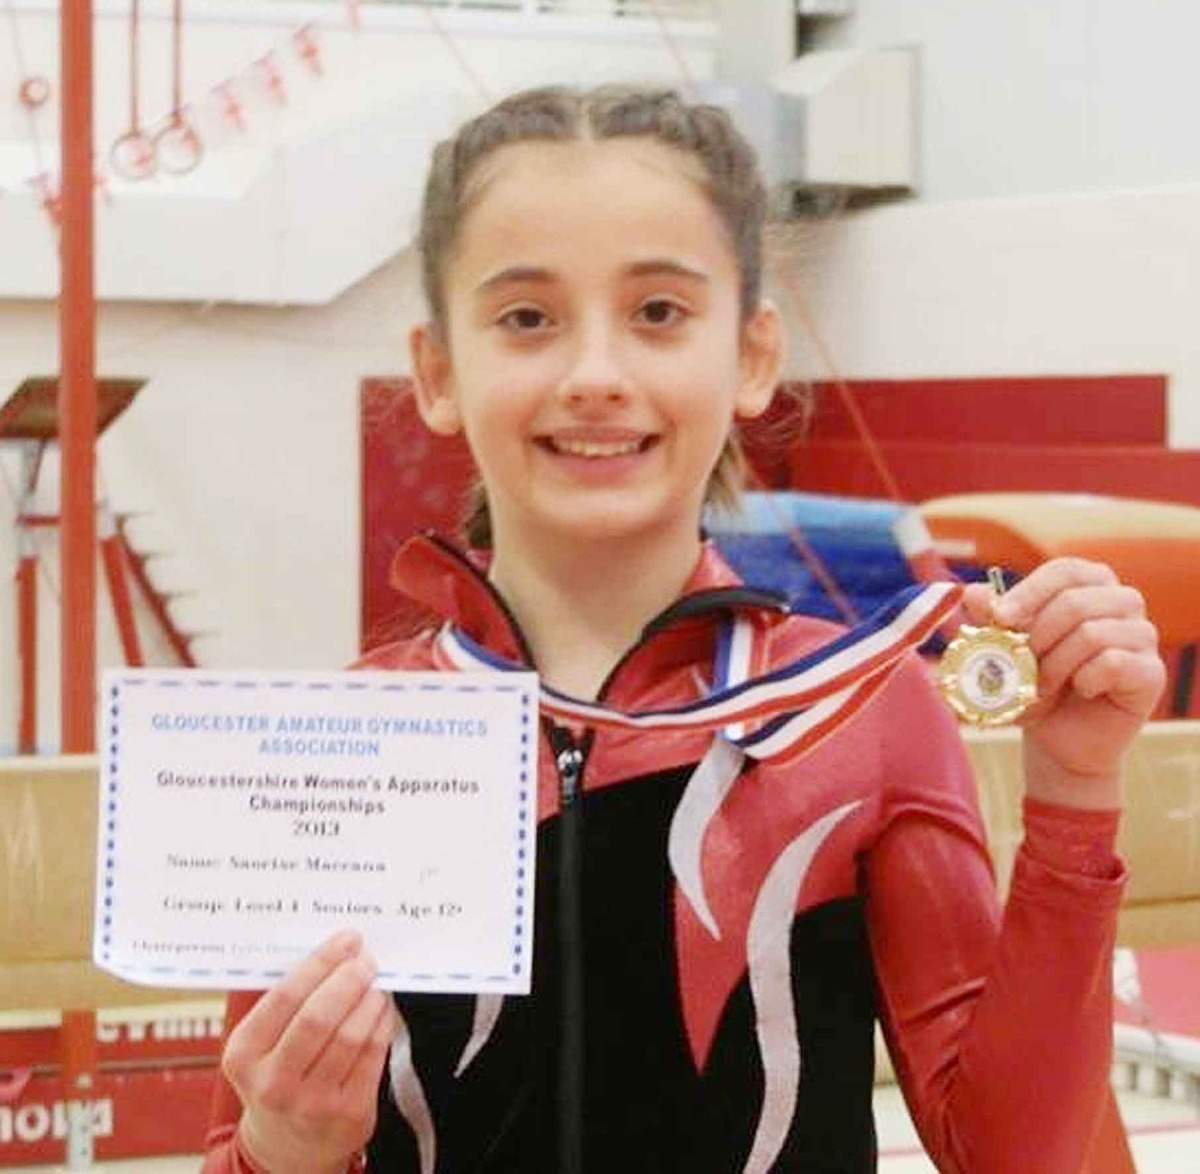 SISTER ACT: Laoishe MacCana, 16, is the new level three senior Gloucestershire champion, while Saoirse, 13, won the level four senior category at the event.